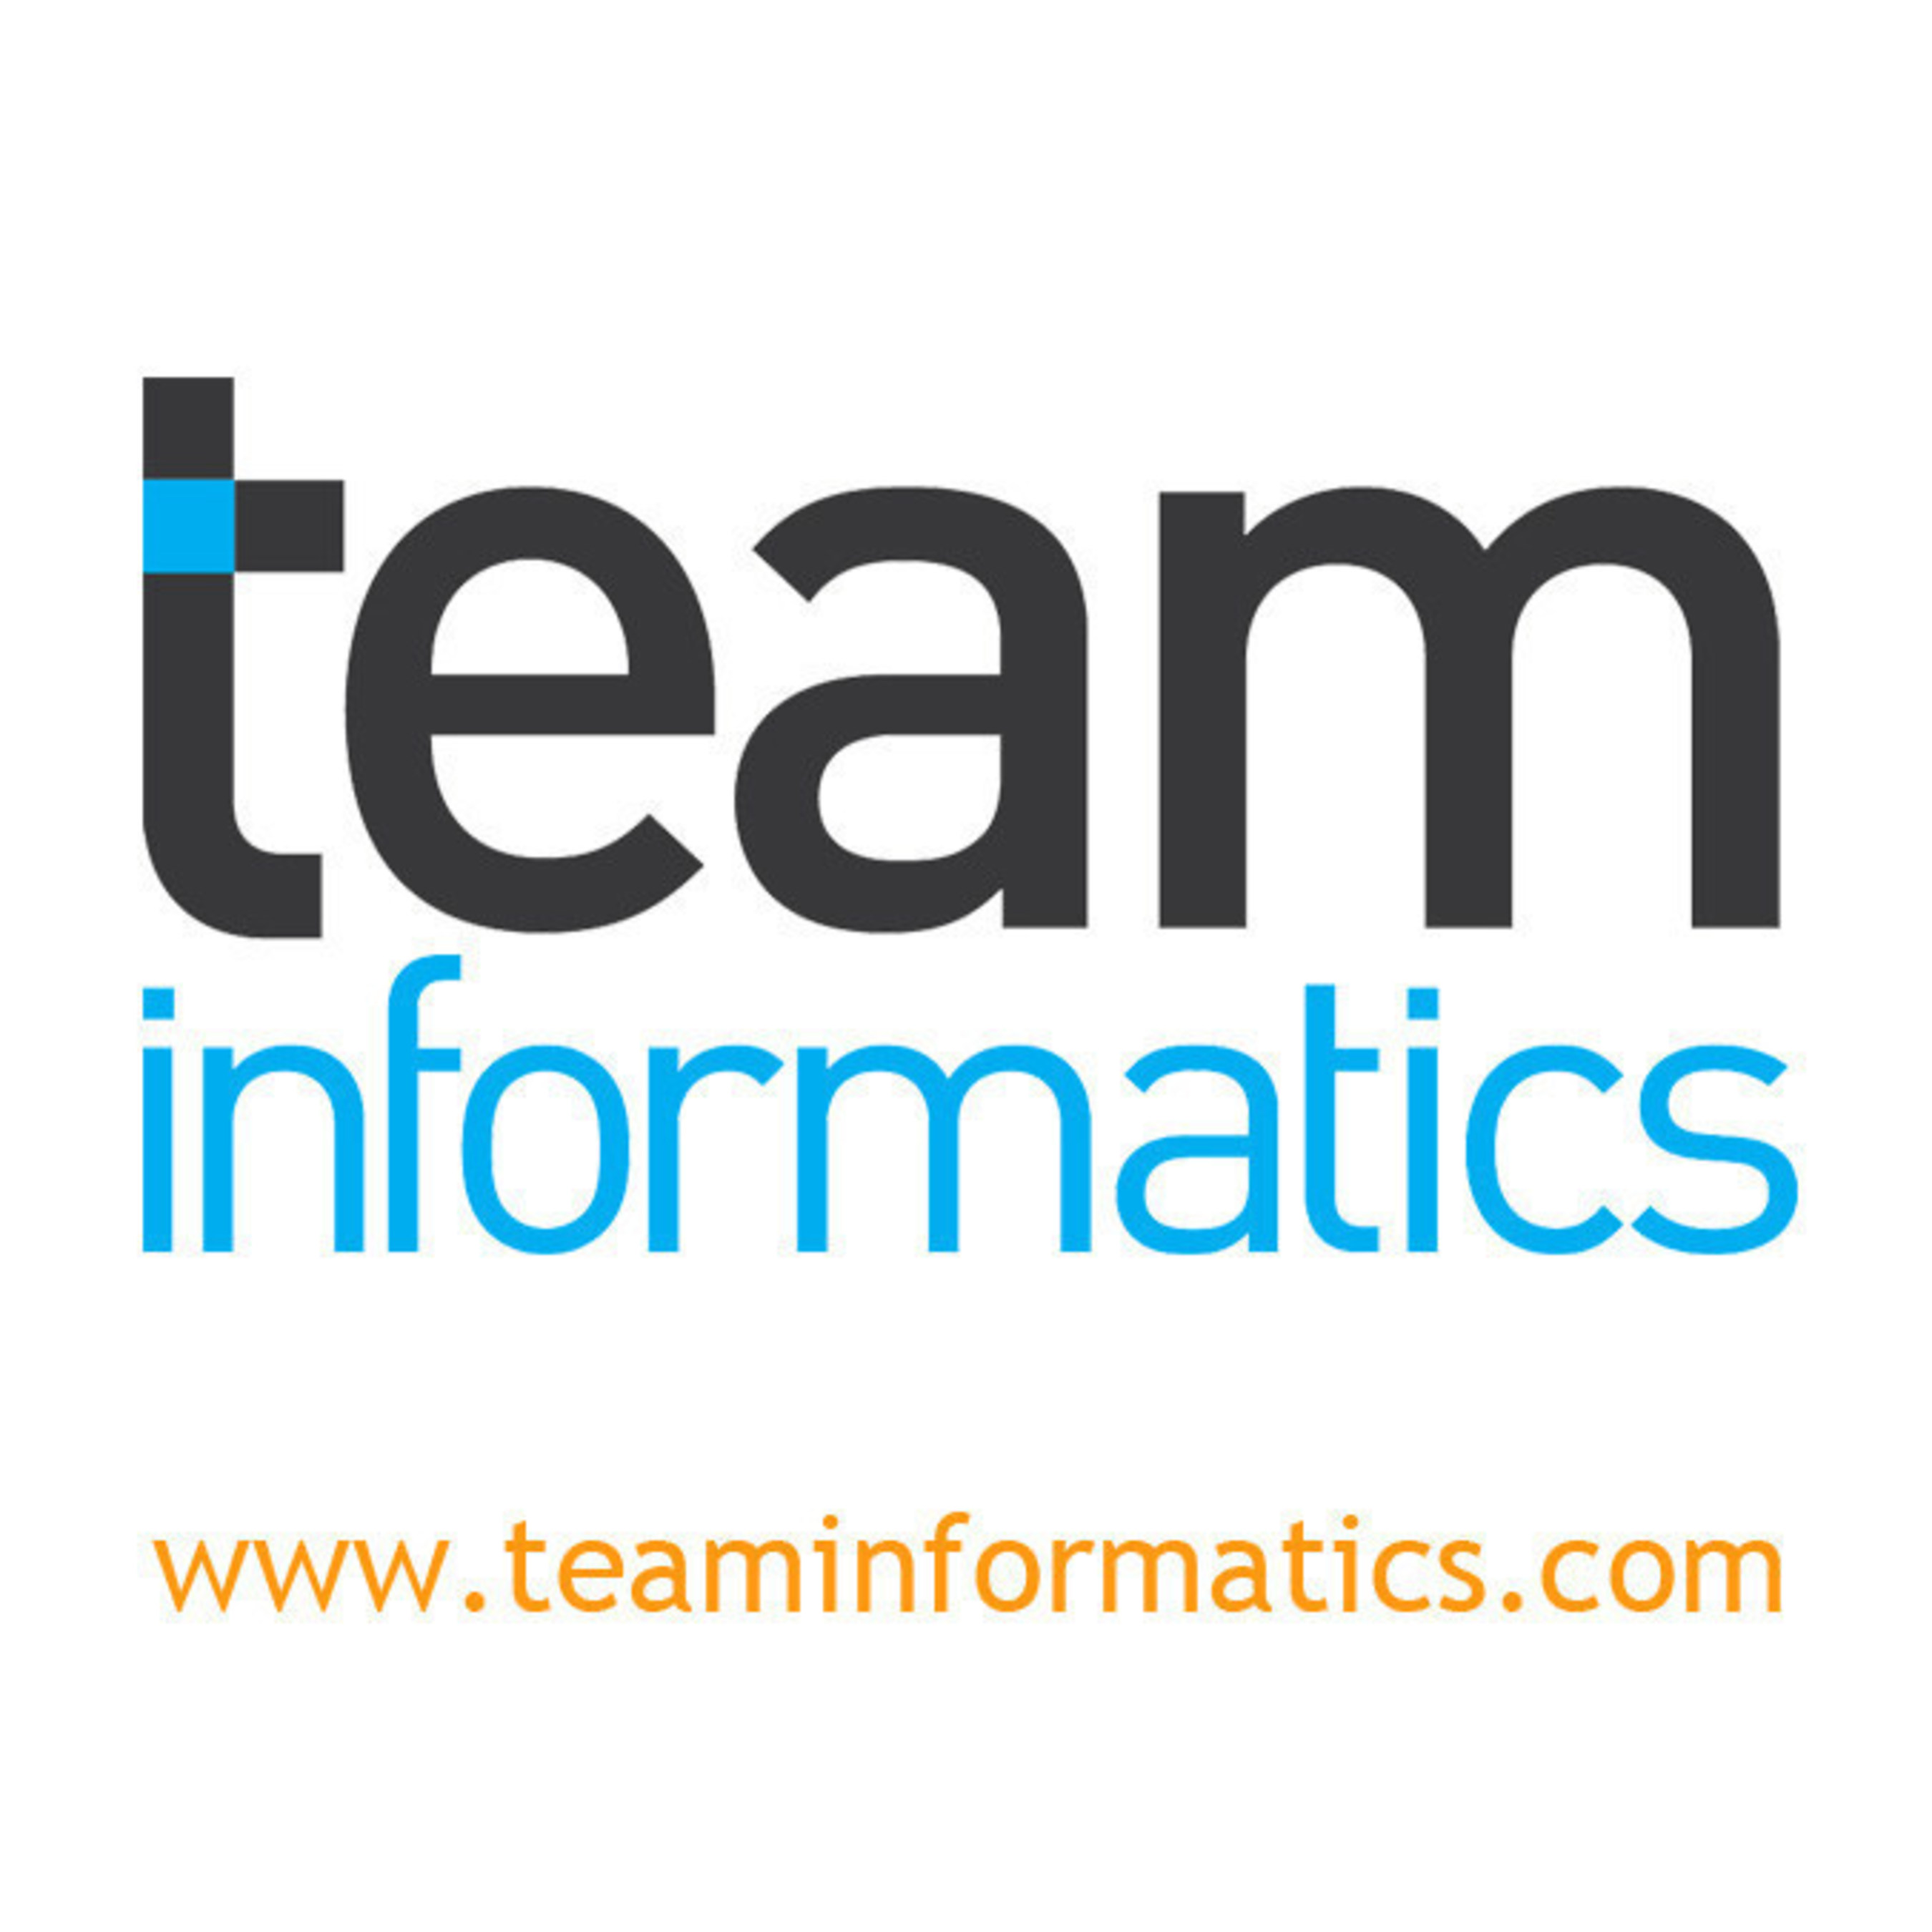 TEAM Informatics Strengthens Enterprise Content Management Service Offerings - Triples Growth in Offshore Staffing